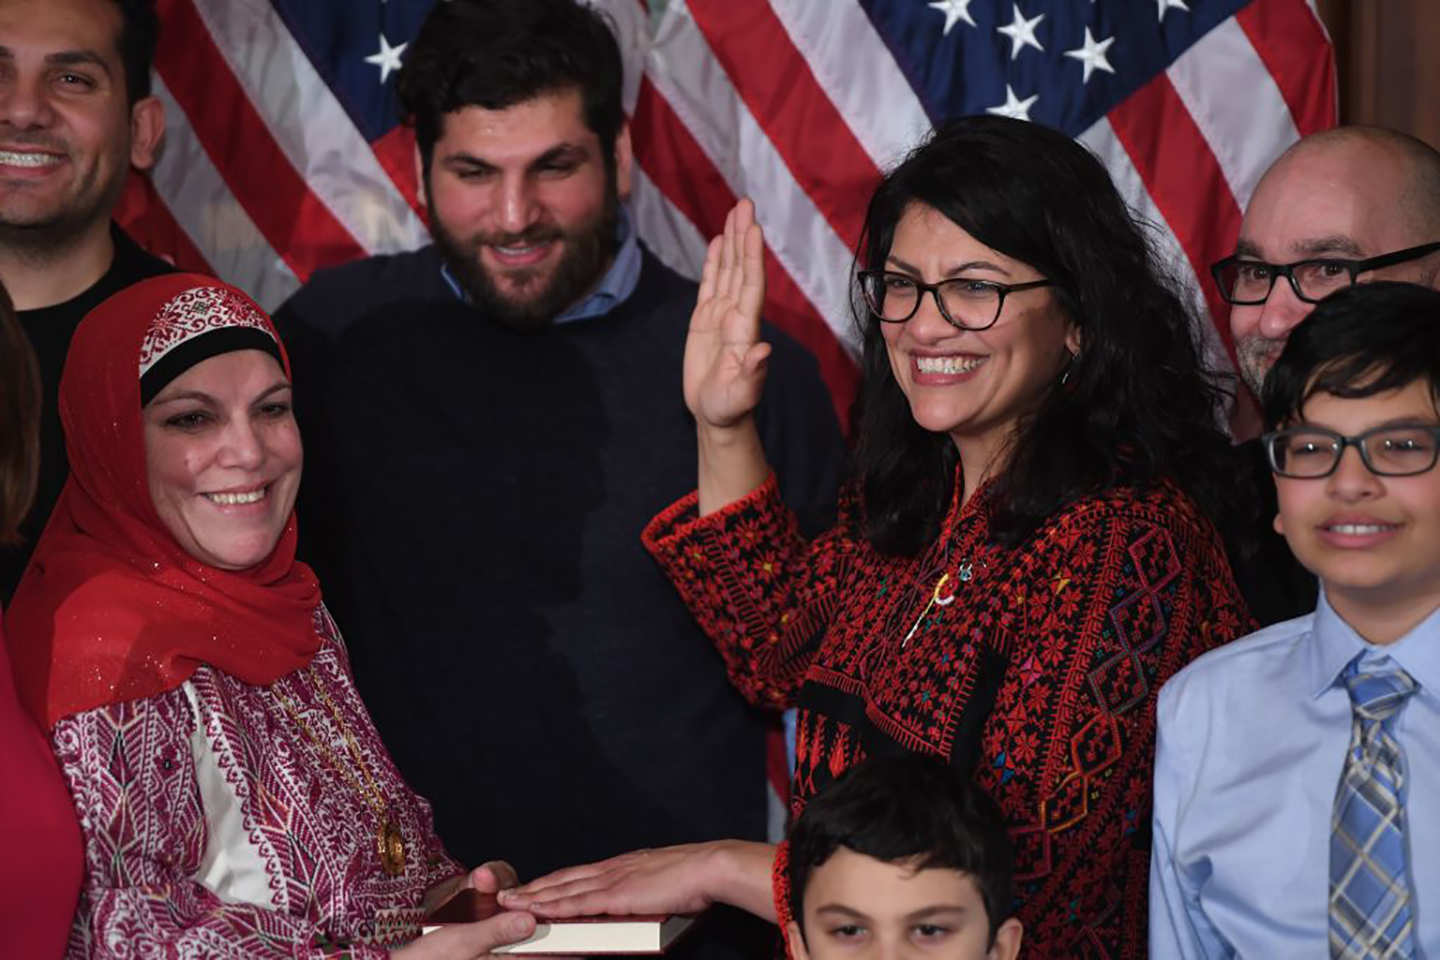 Rashida Tlaib and Ilhan Omar Were Going to Palestine, Not Israel - VICE